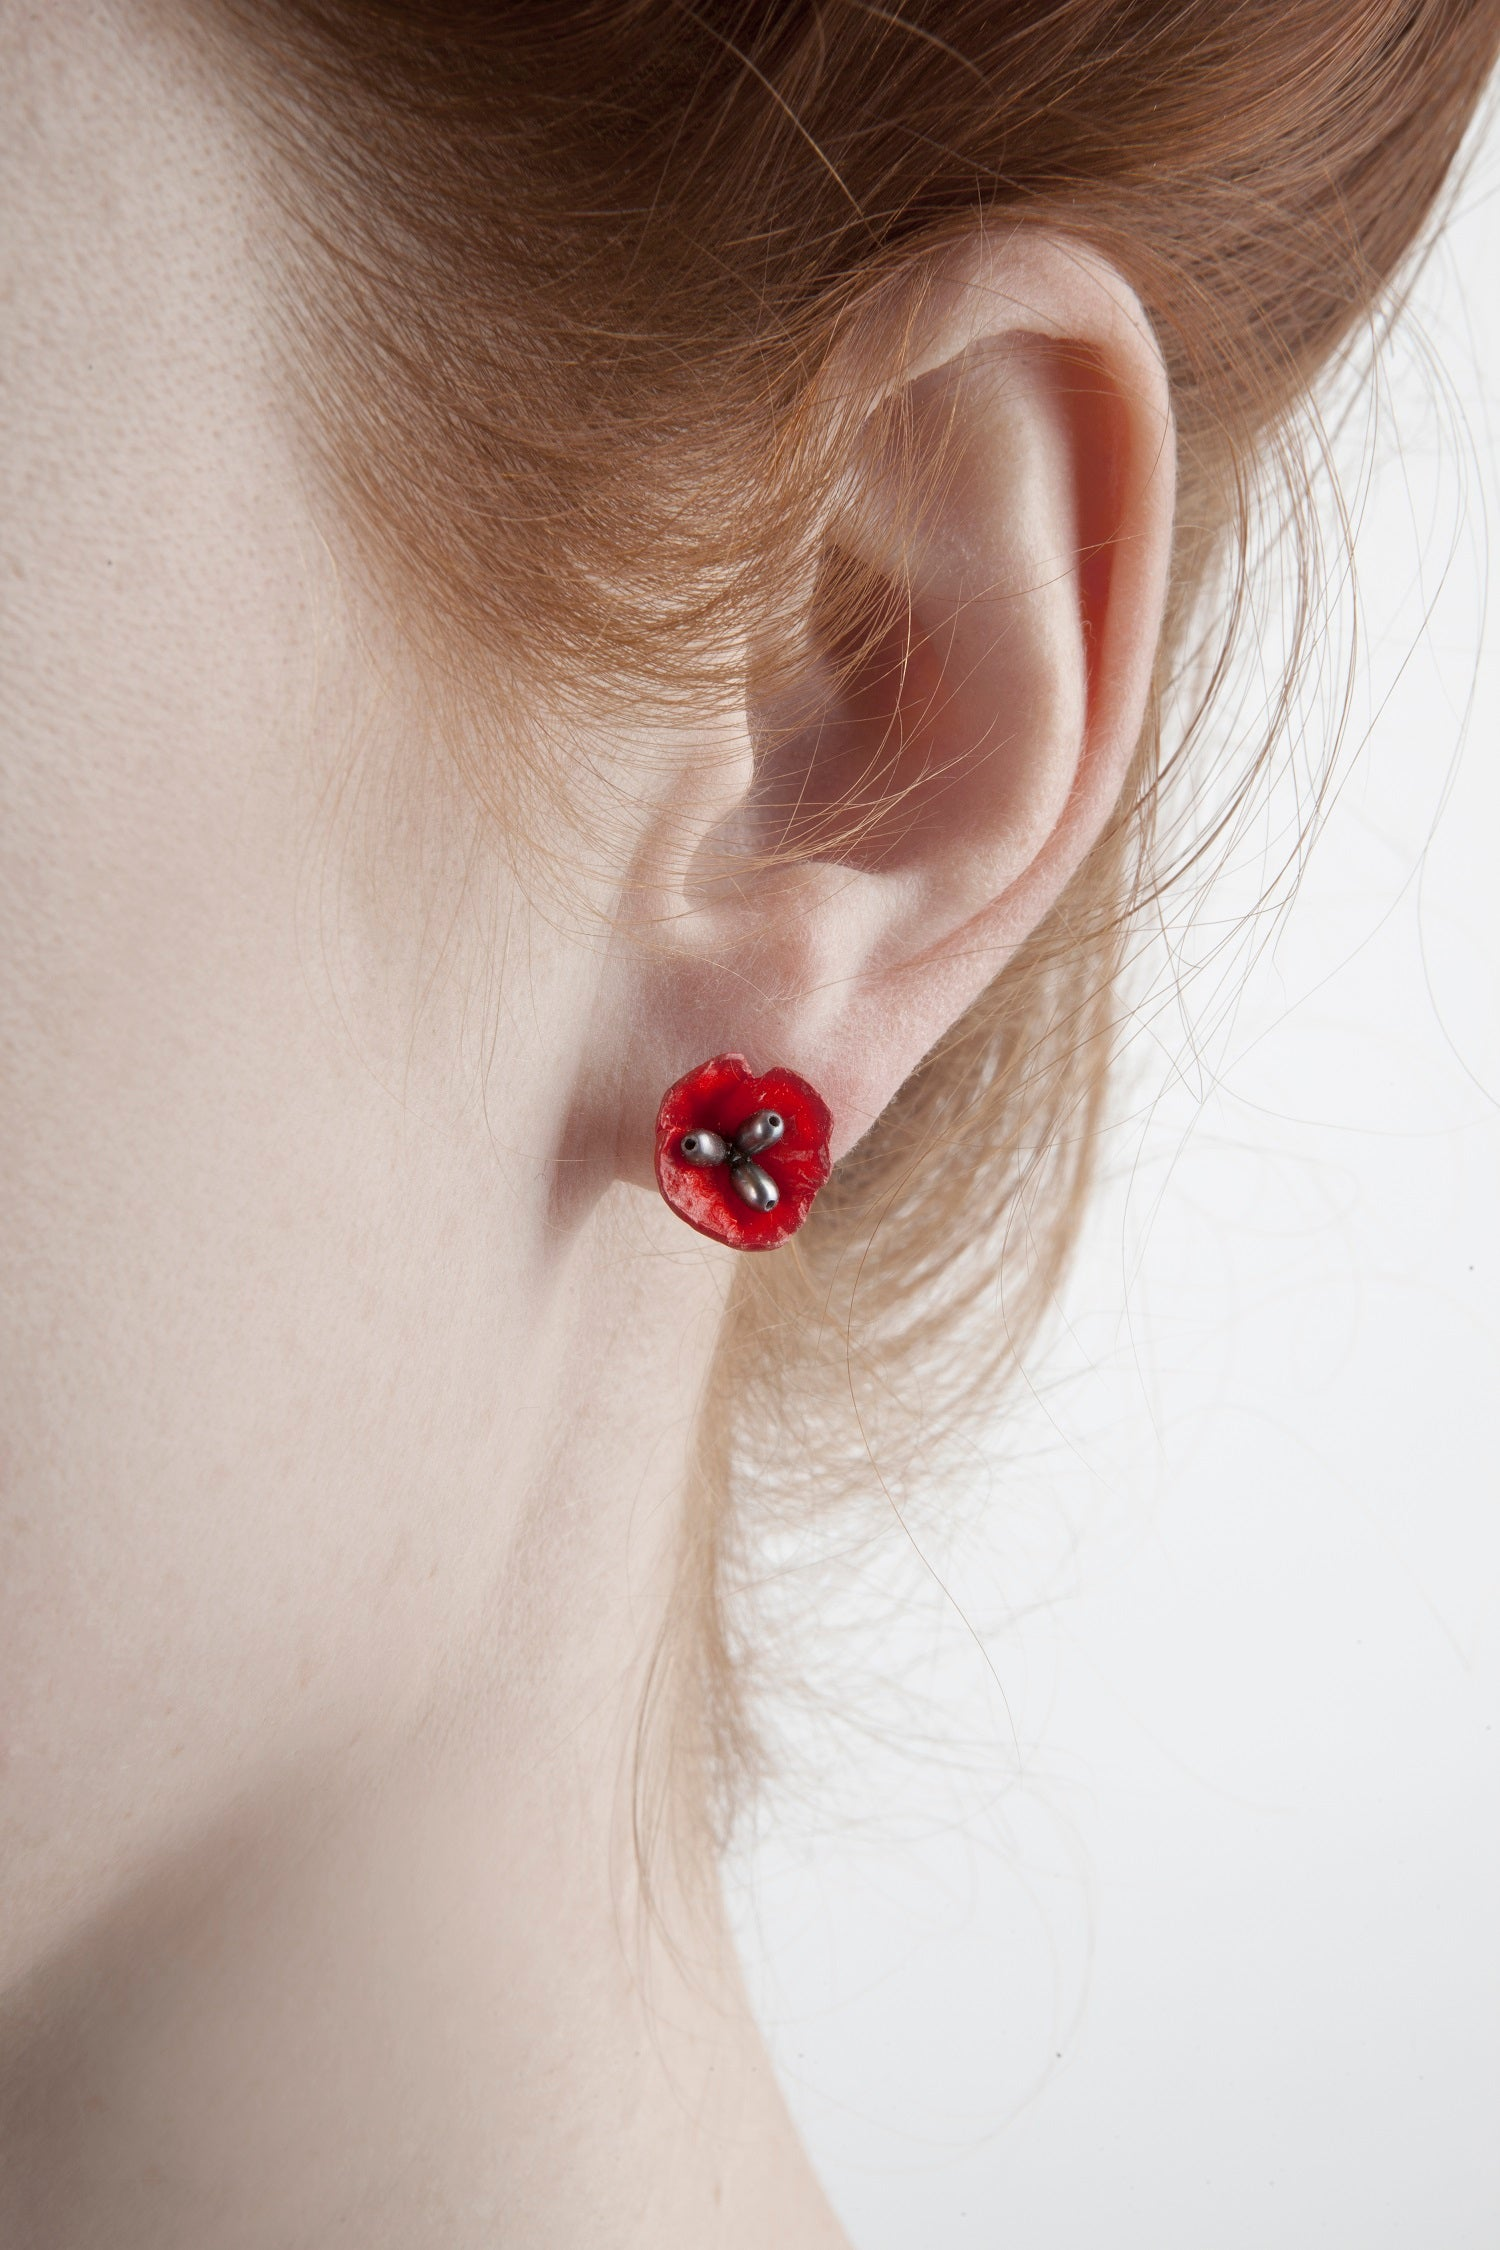 Red Poppy Earrings - Post